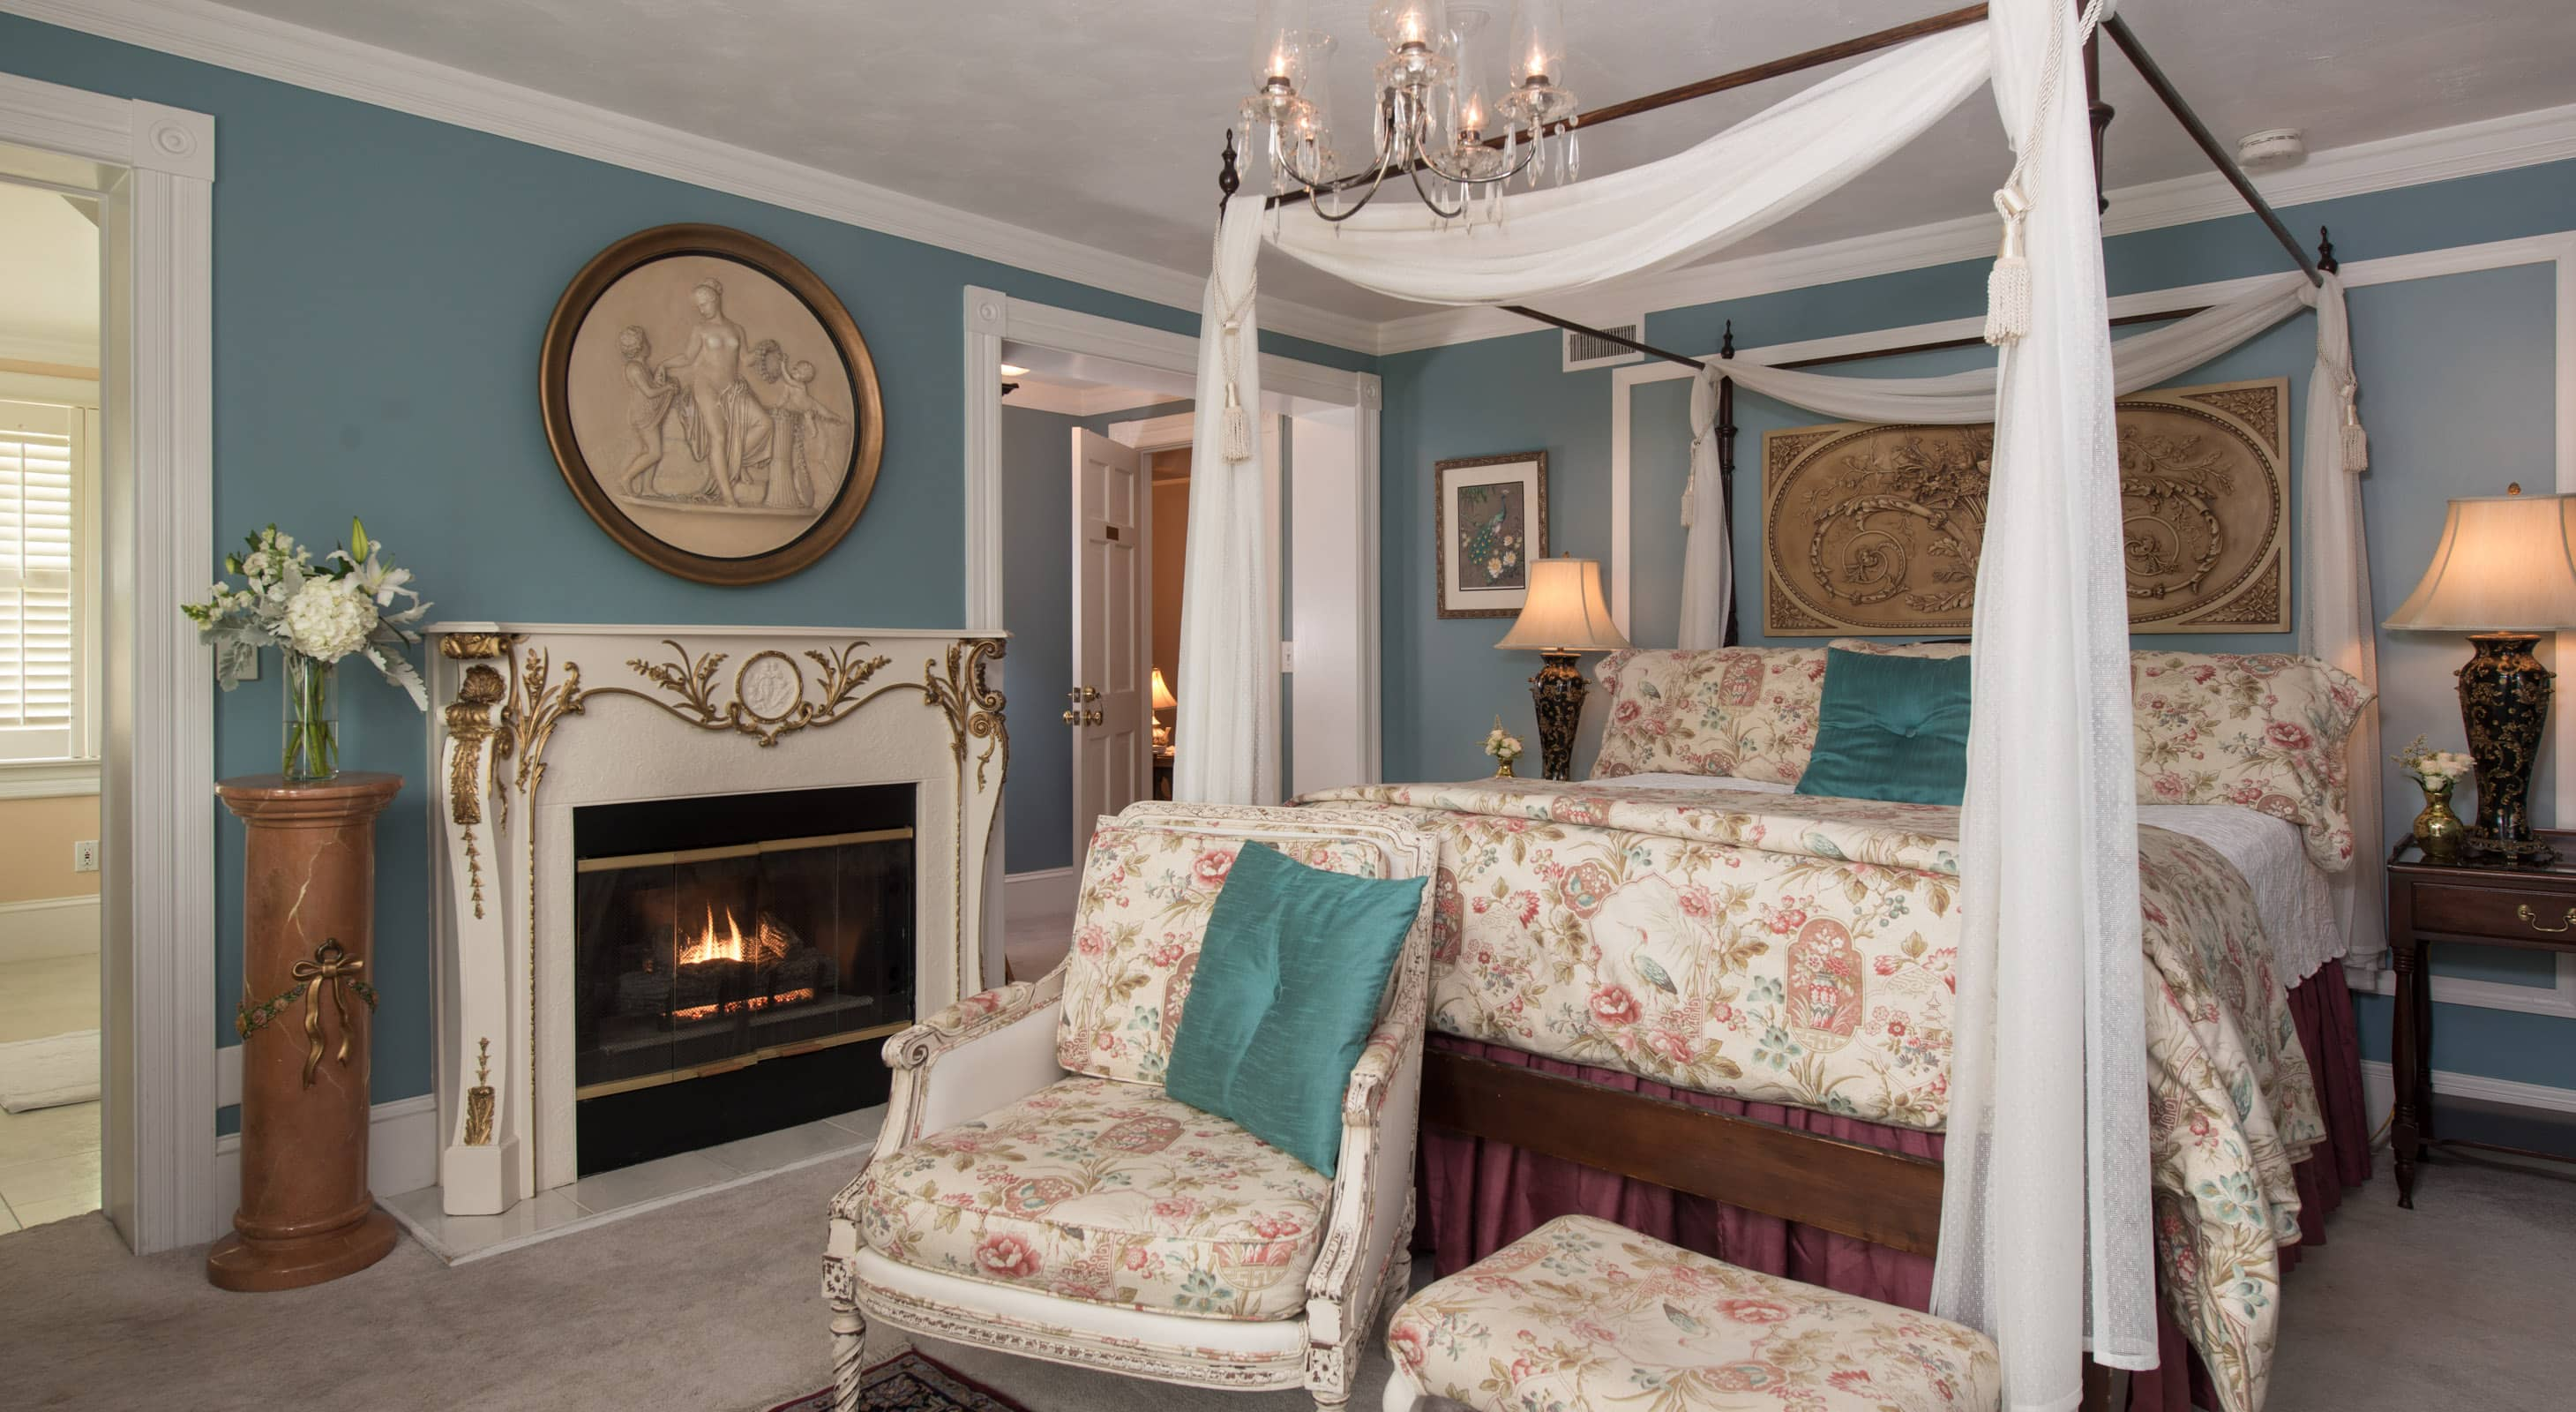 Roanoke Island Lodging Queen Bed, Sitting Area and Fireplace